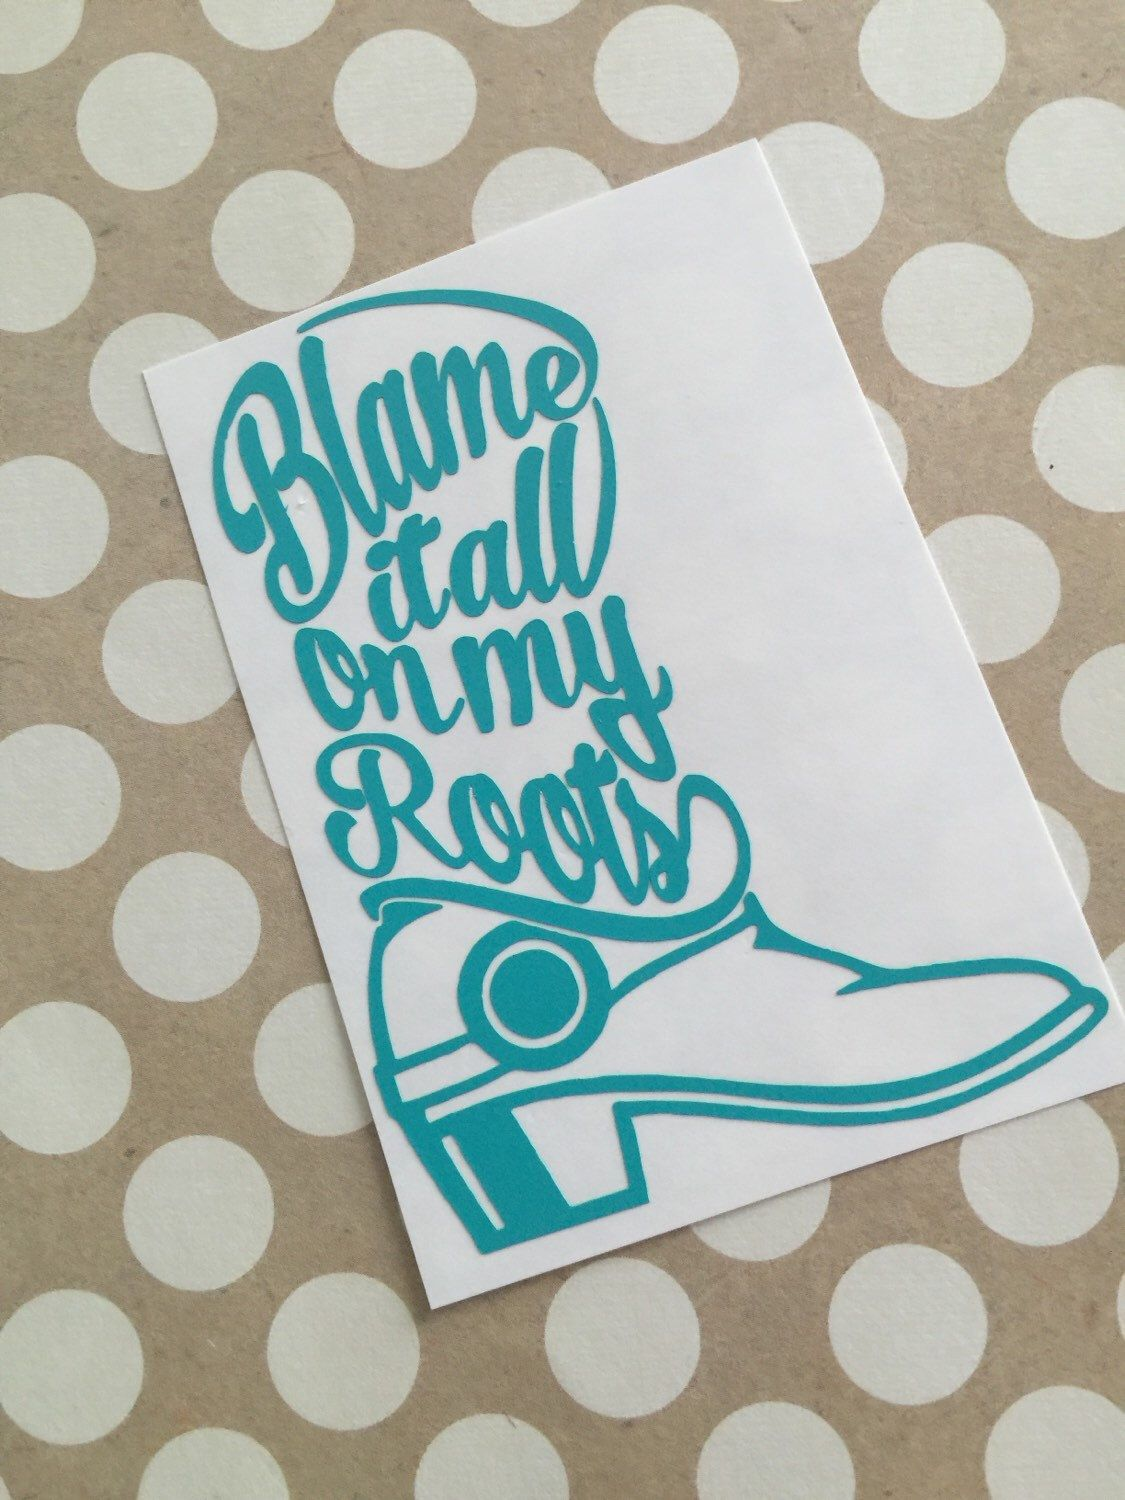 Blame It All On My Roots Decal Southern Charm Decals Boot Decal Country Girl Decal Truck Deca Country Girl Decal Girl Decals Country Girl Decals Trucks [ 1500 x 1125 Pixel ]